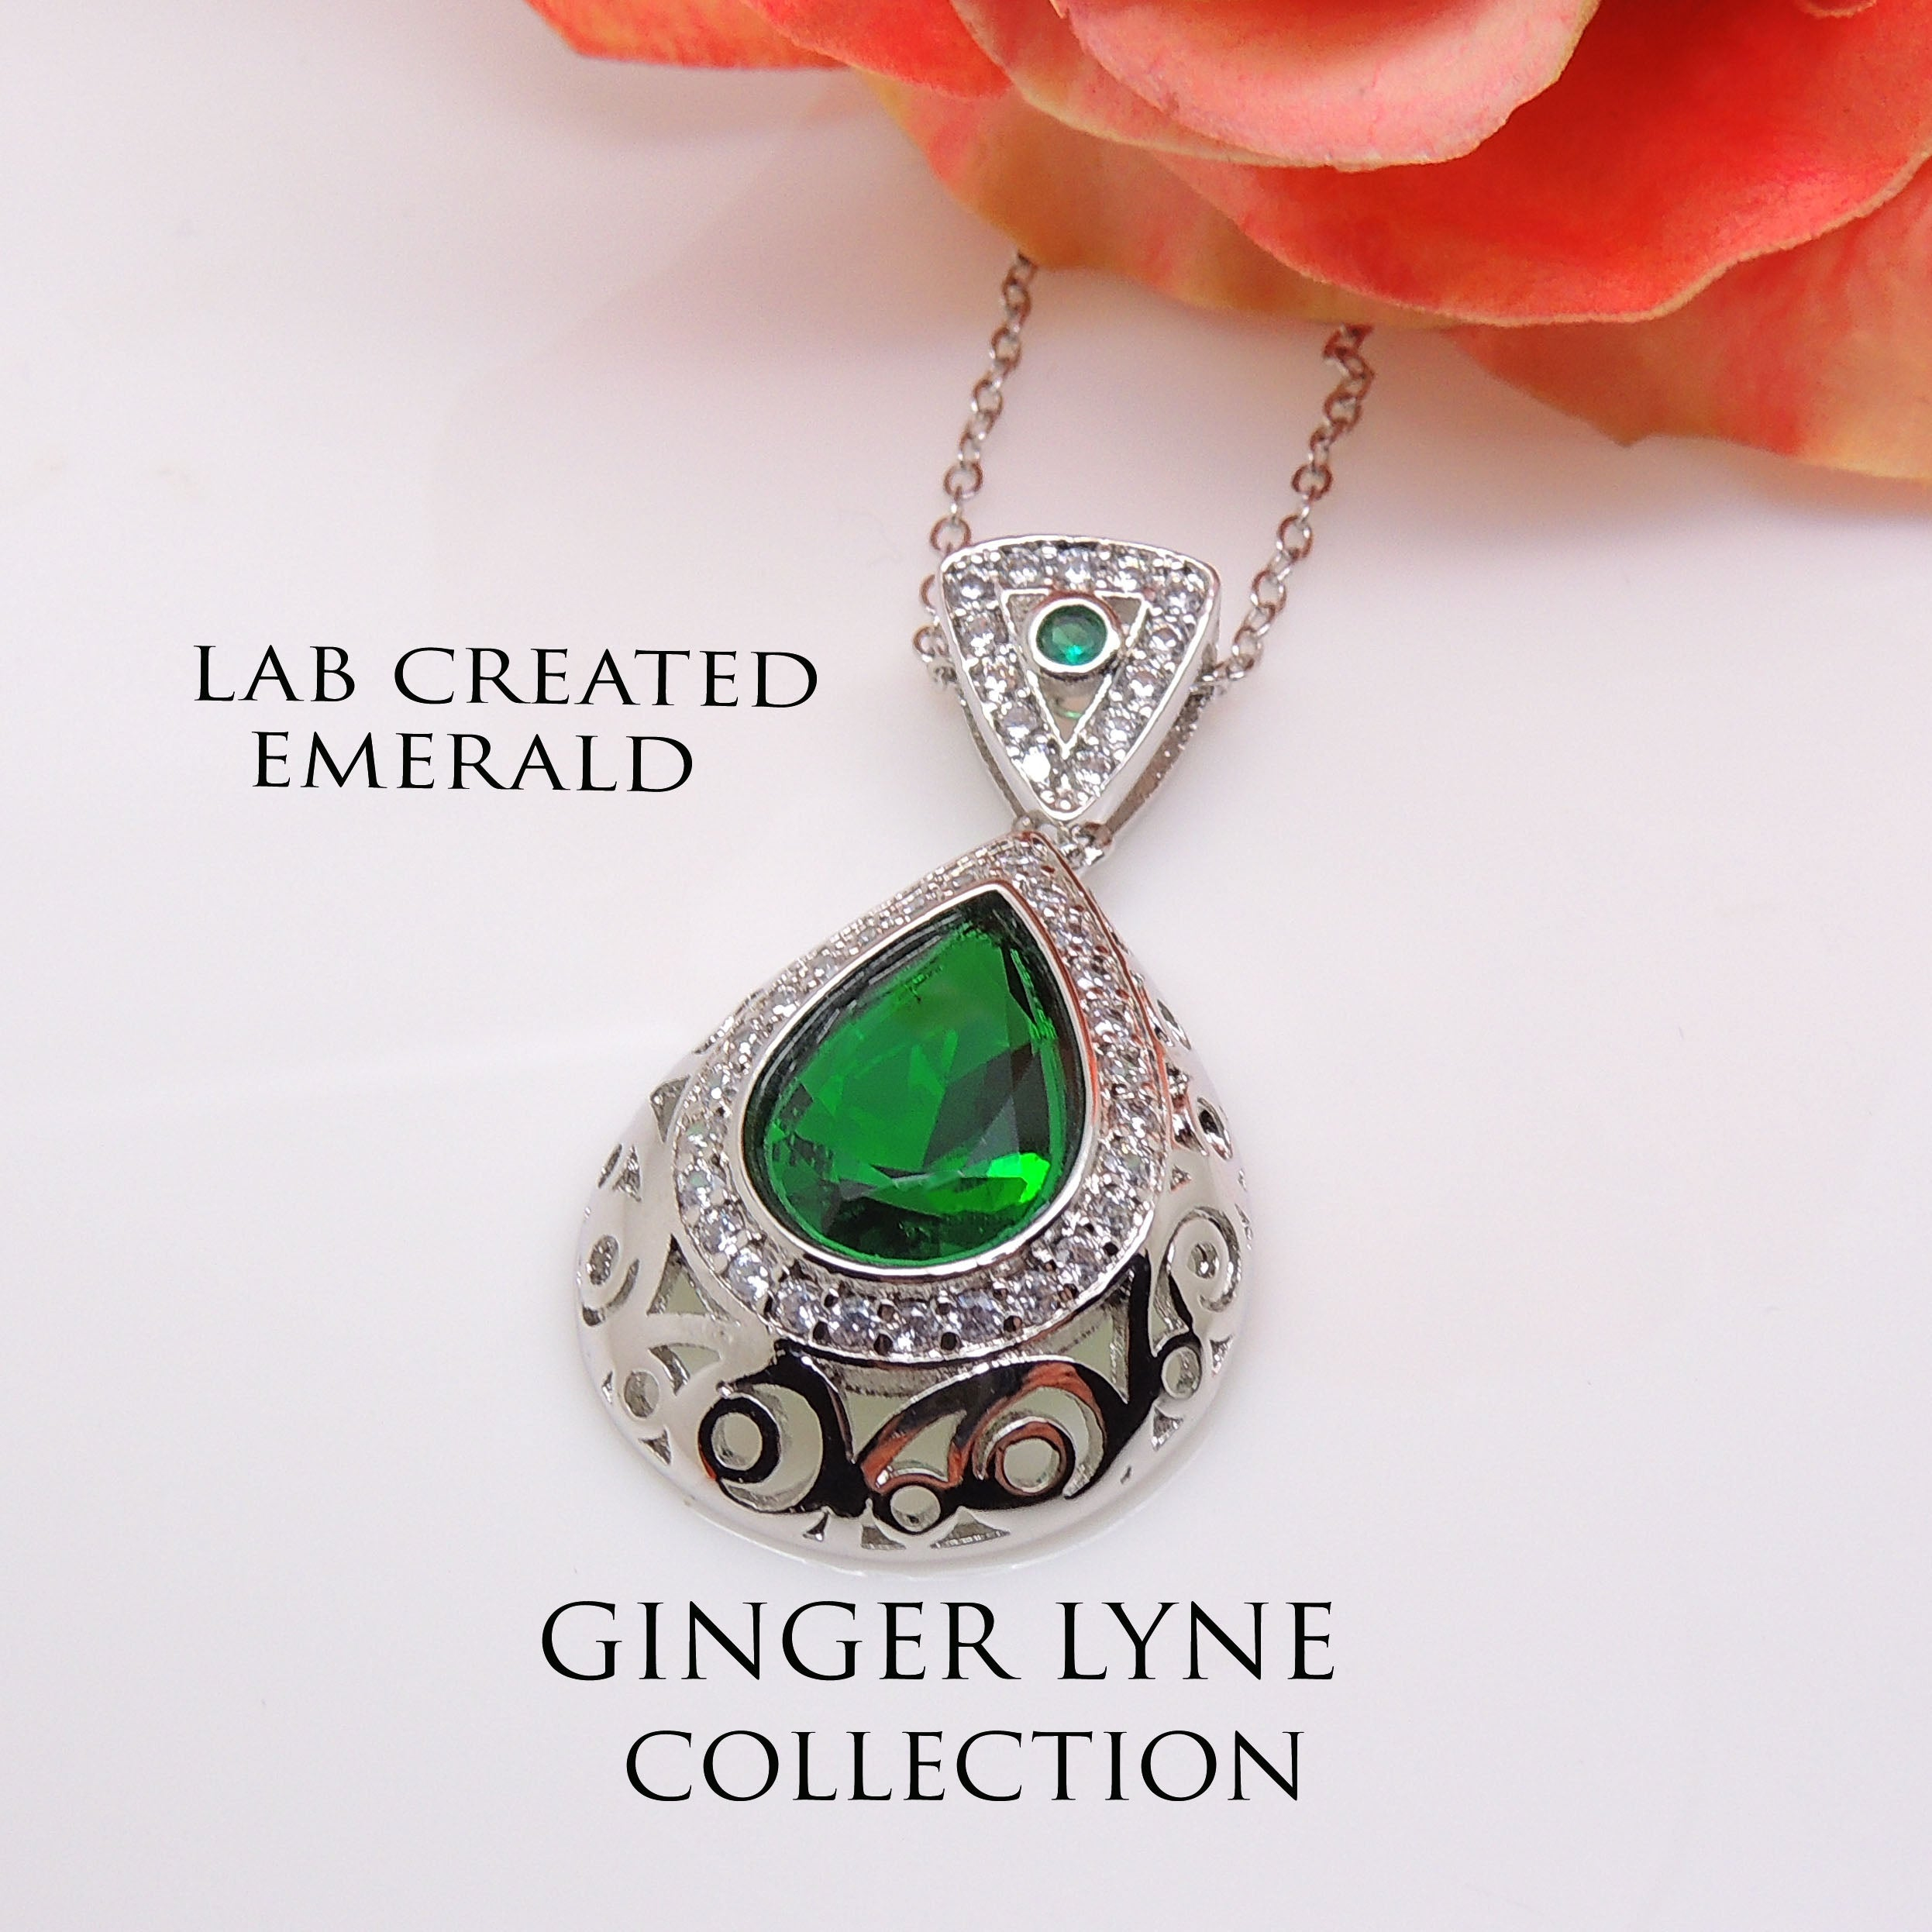 Lona Green Oval Teardrop Pendant Chain Necklace Ginger Lyne Collection